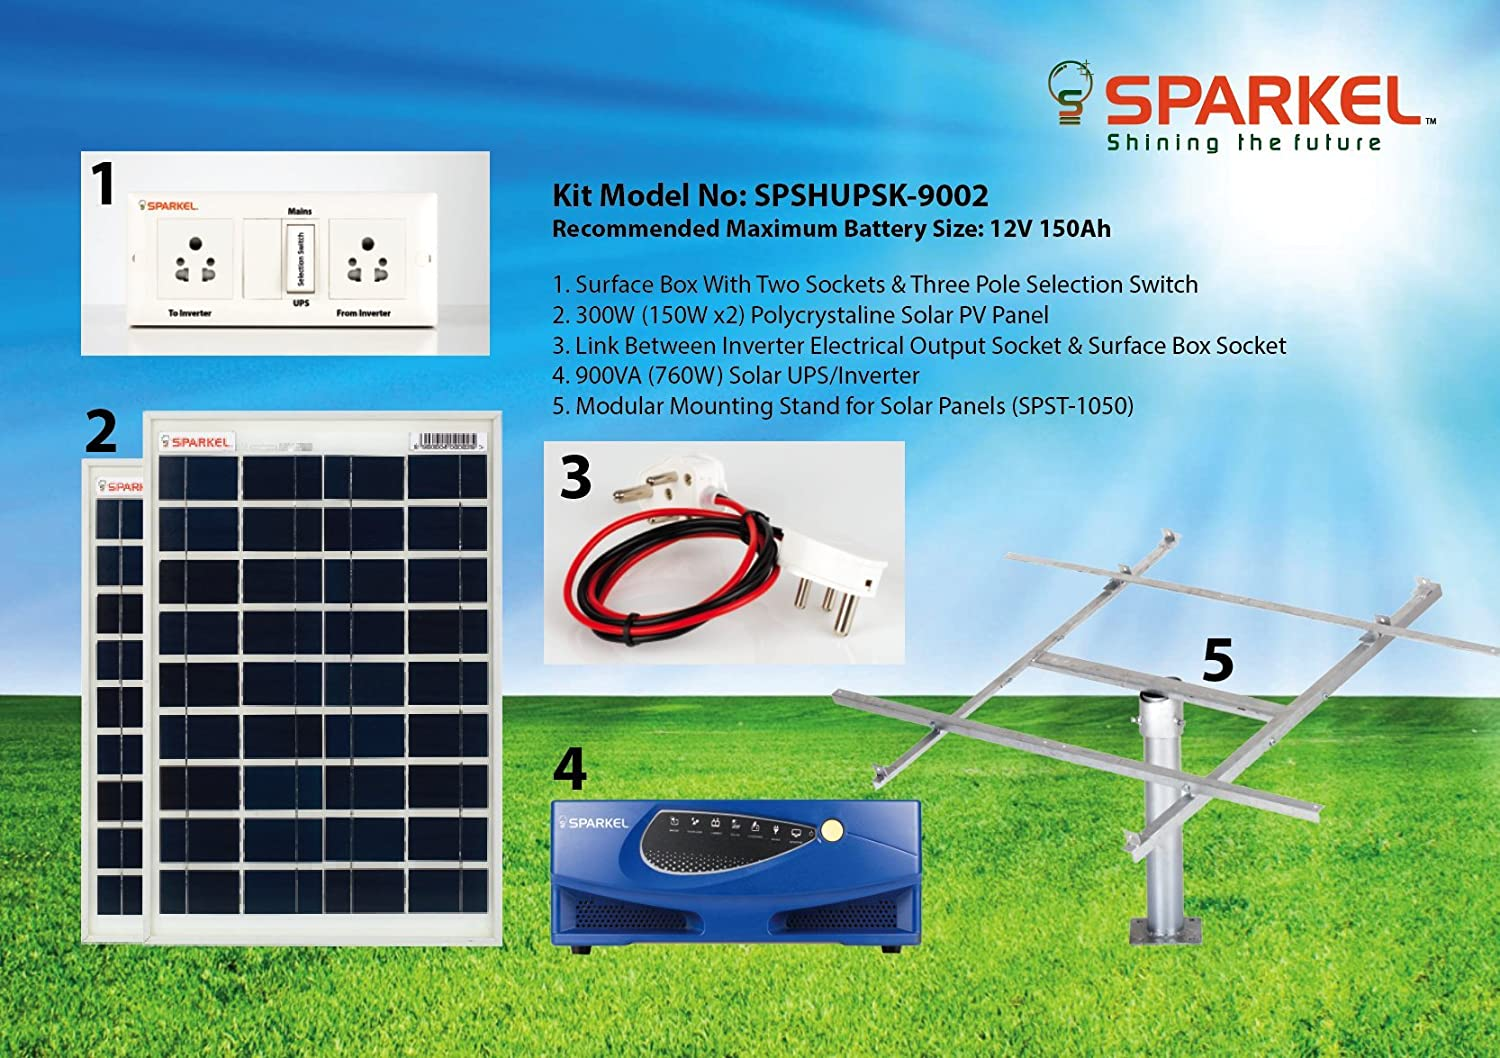 Sparkel Solar Home Ups Inverter Kit 900va 760w With 300w Panels Wiring Diagram Without Battery Spshupsk 9003 Garden Outdoors